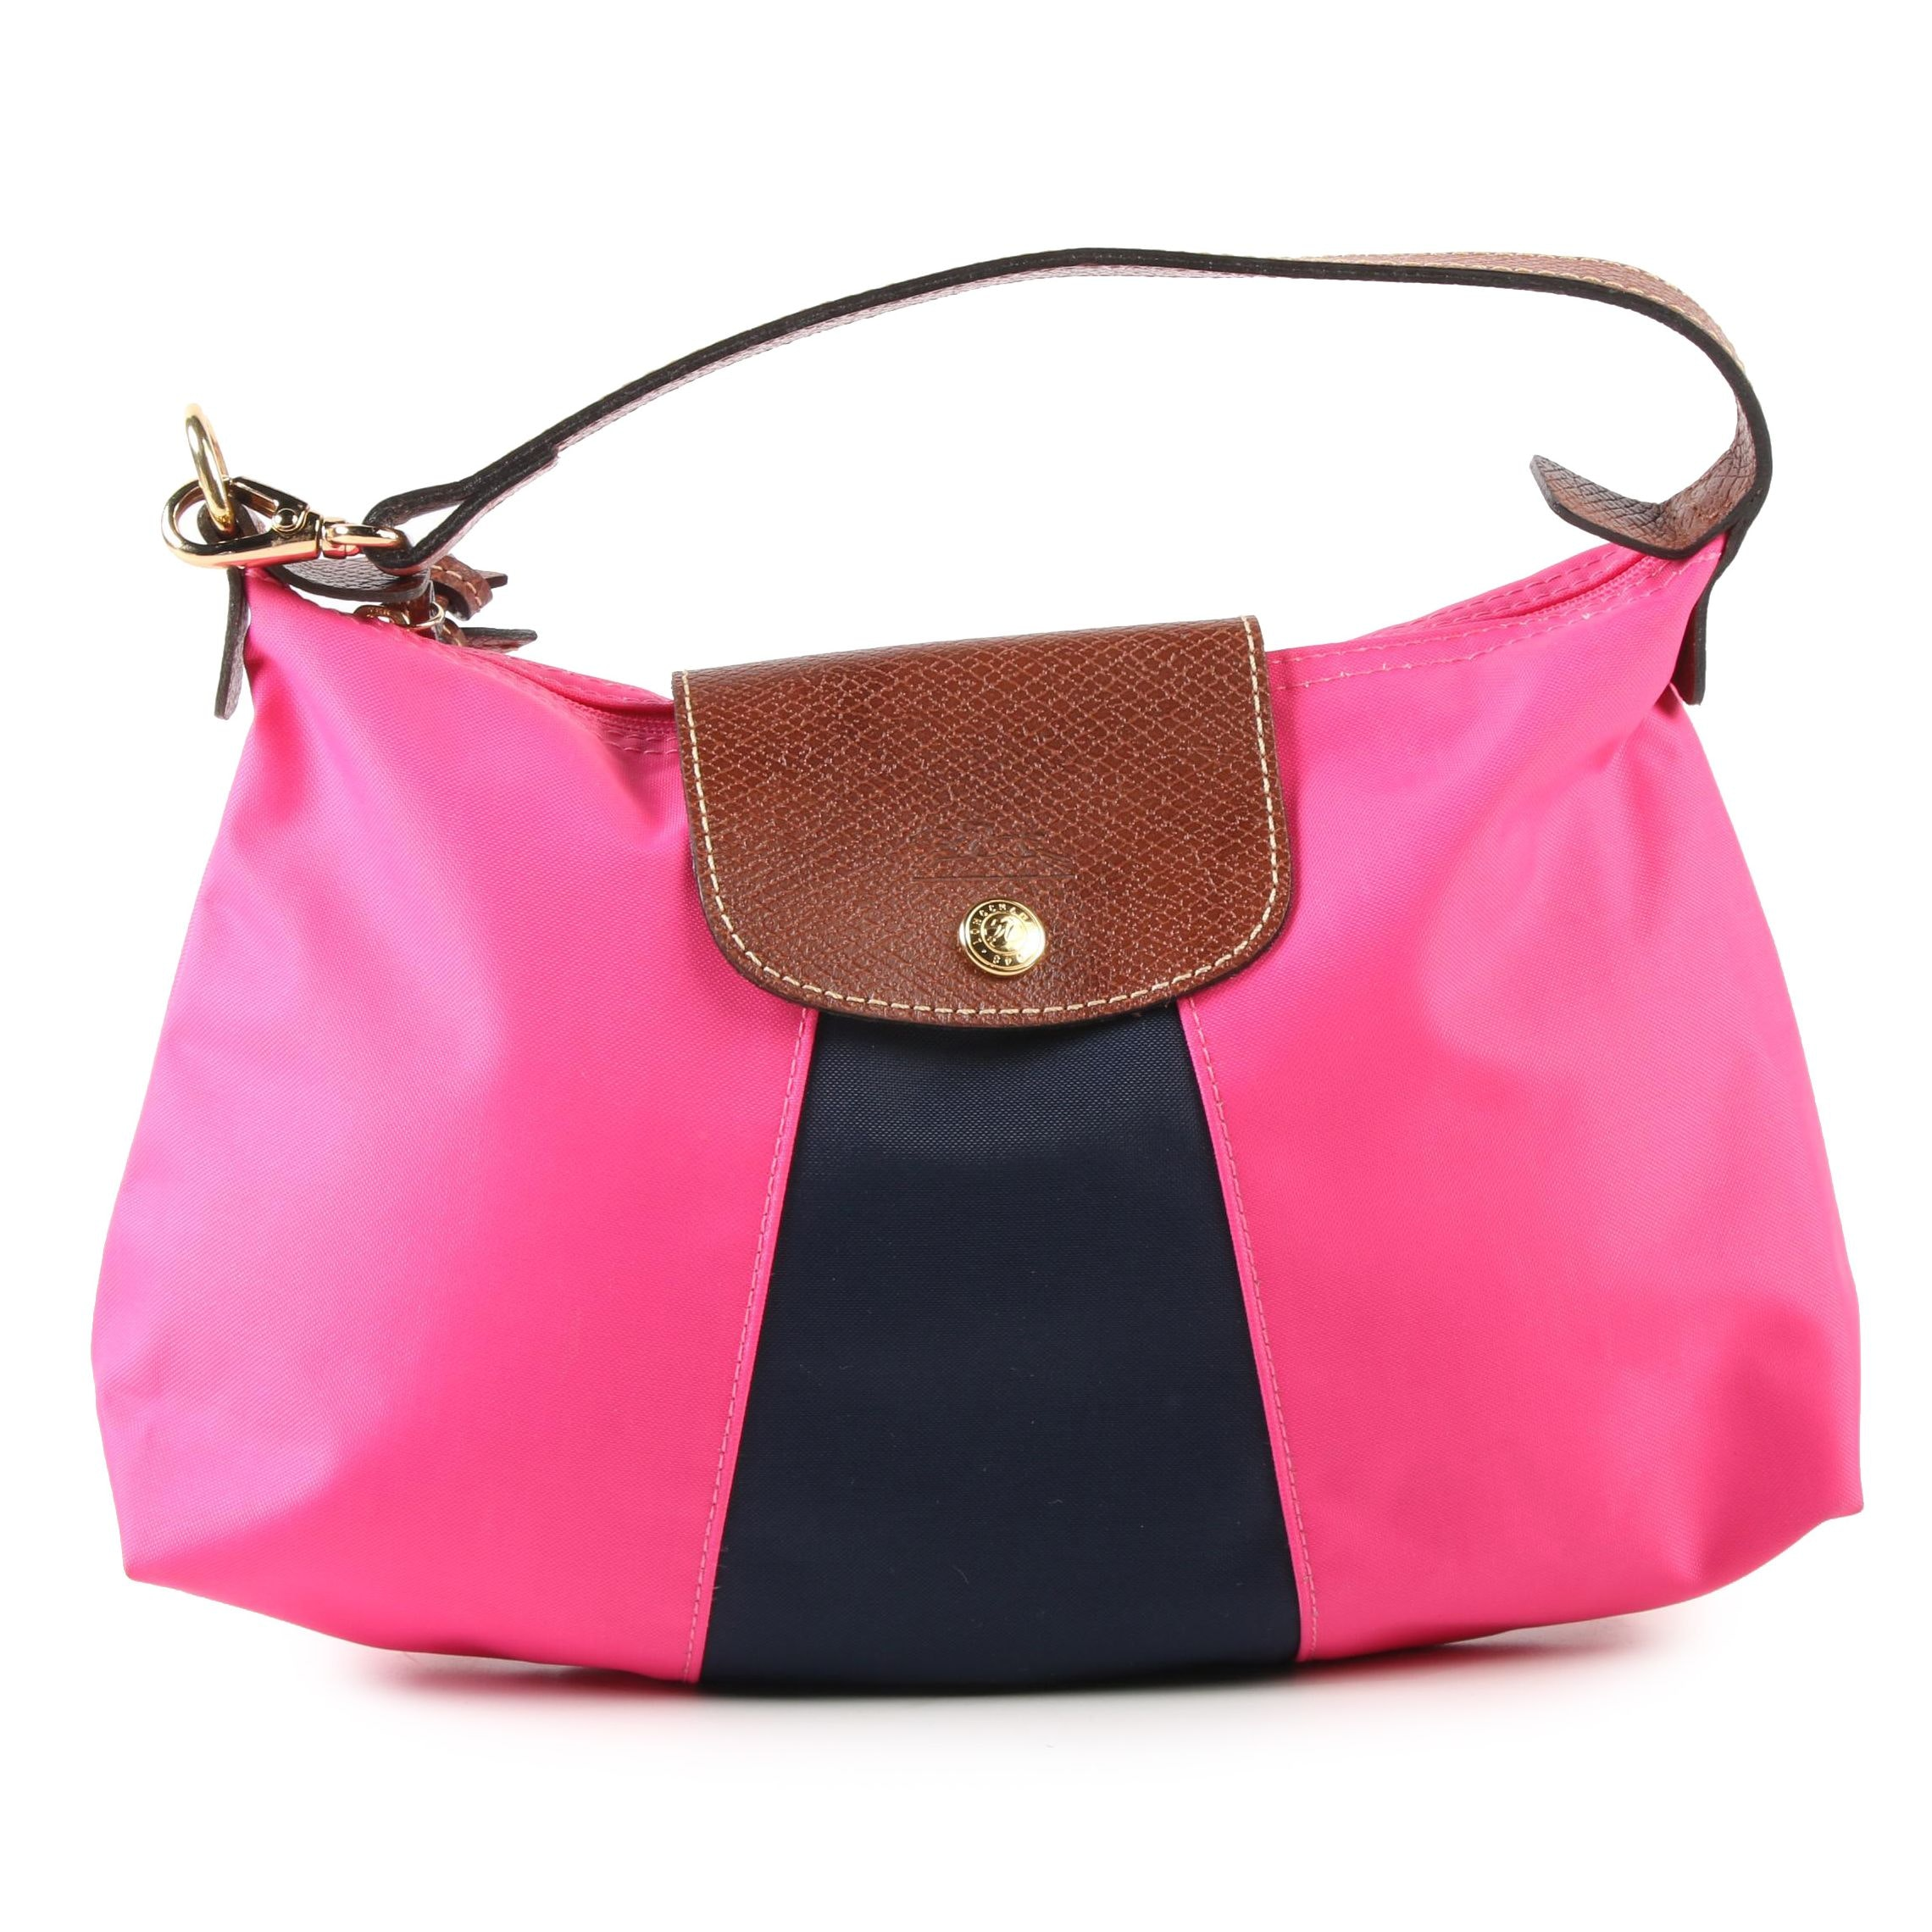 Longchamp Mini Pink and Blue Nylon Accessory Bag Trimmed in Leather